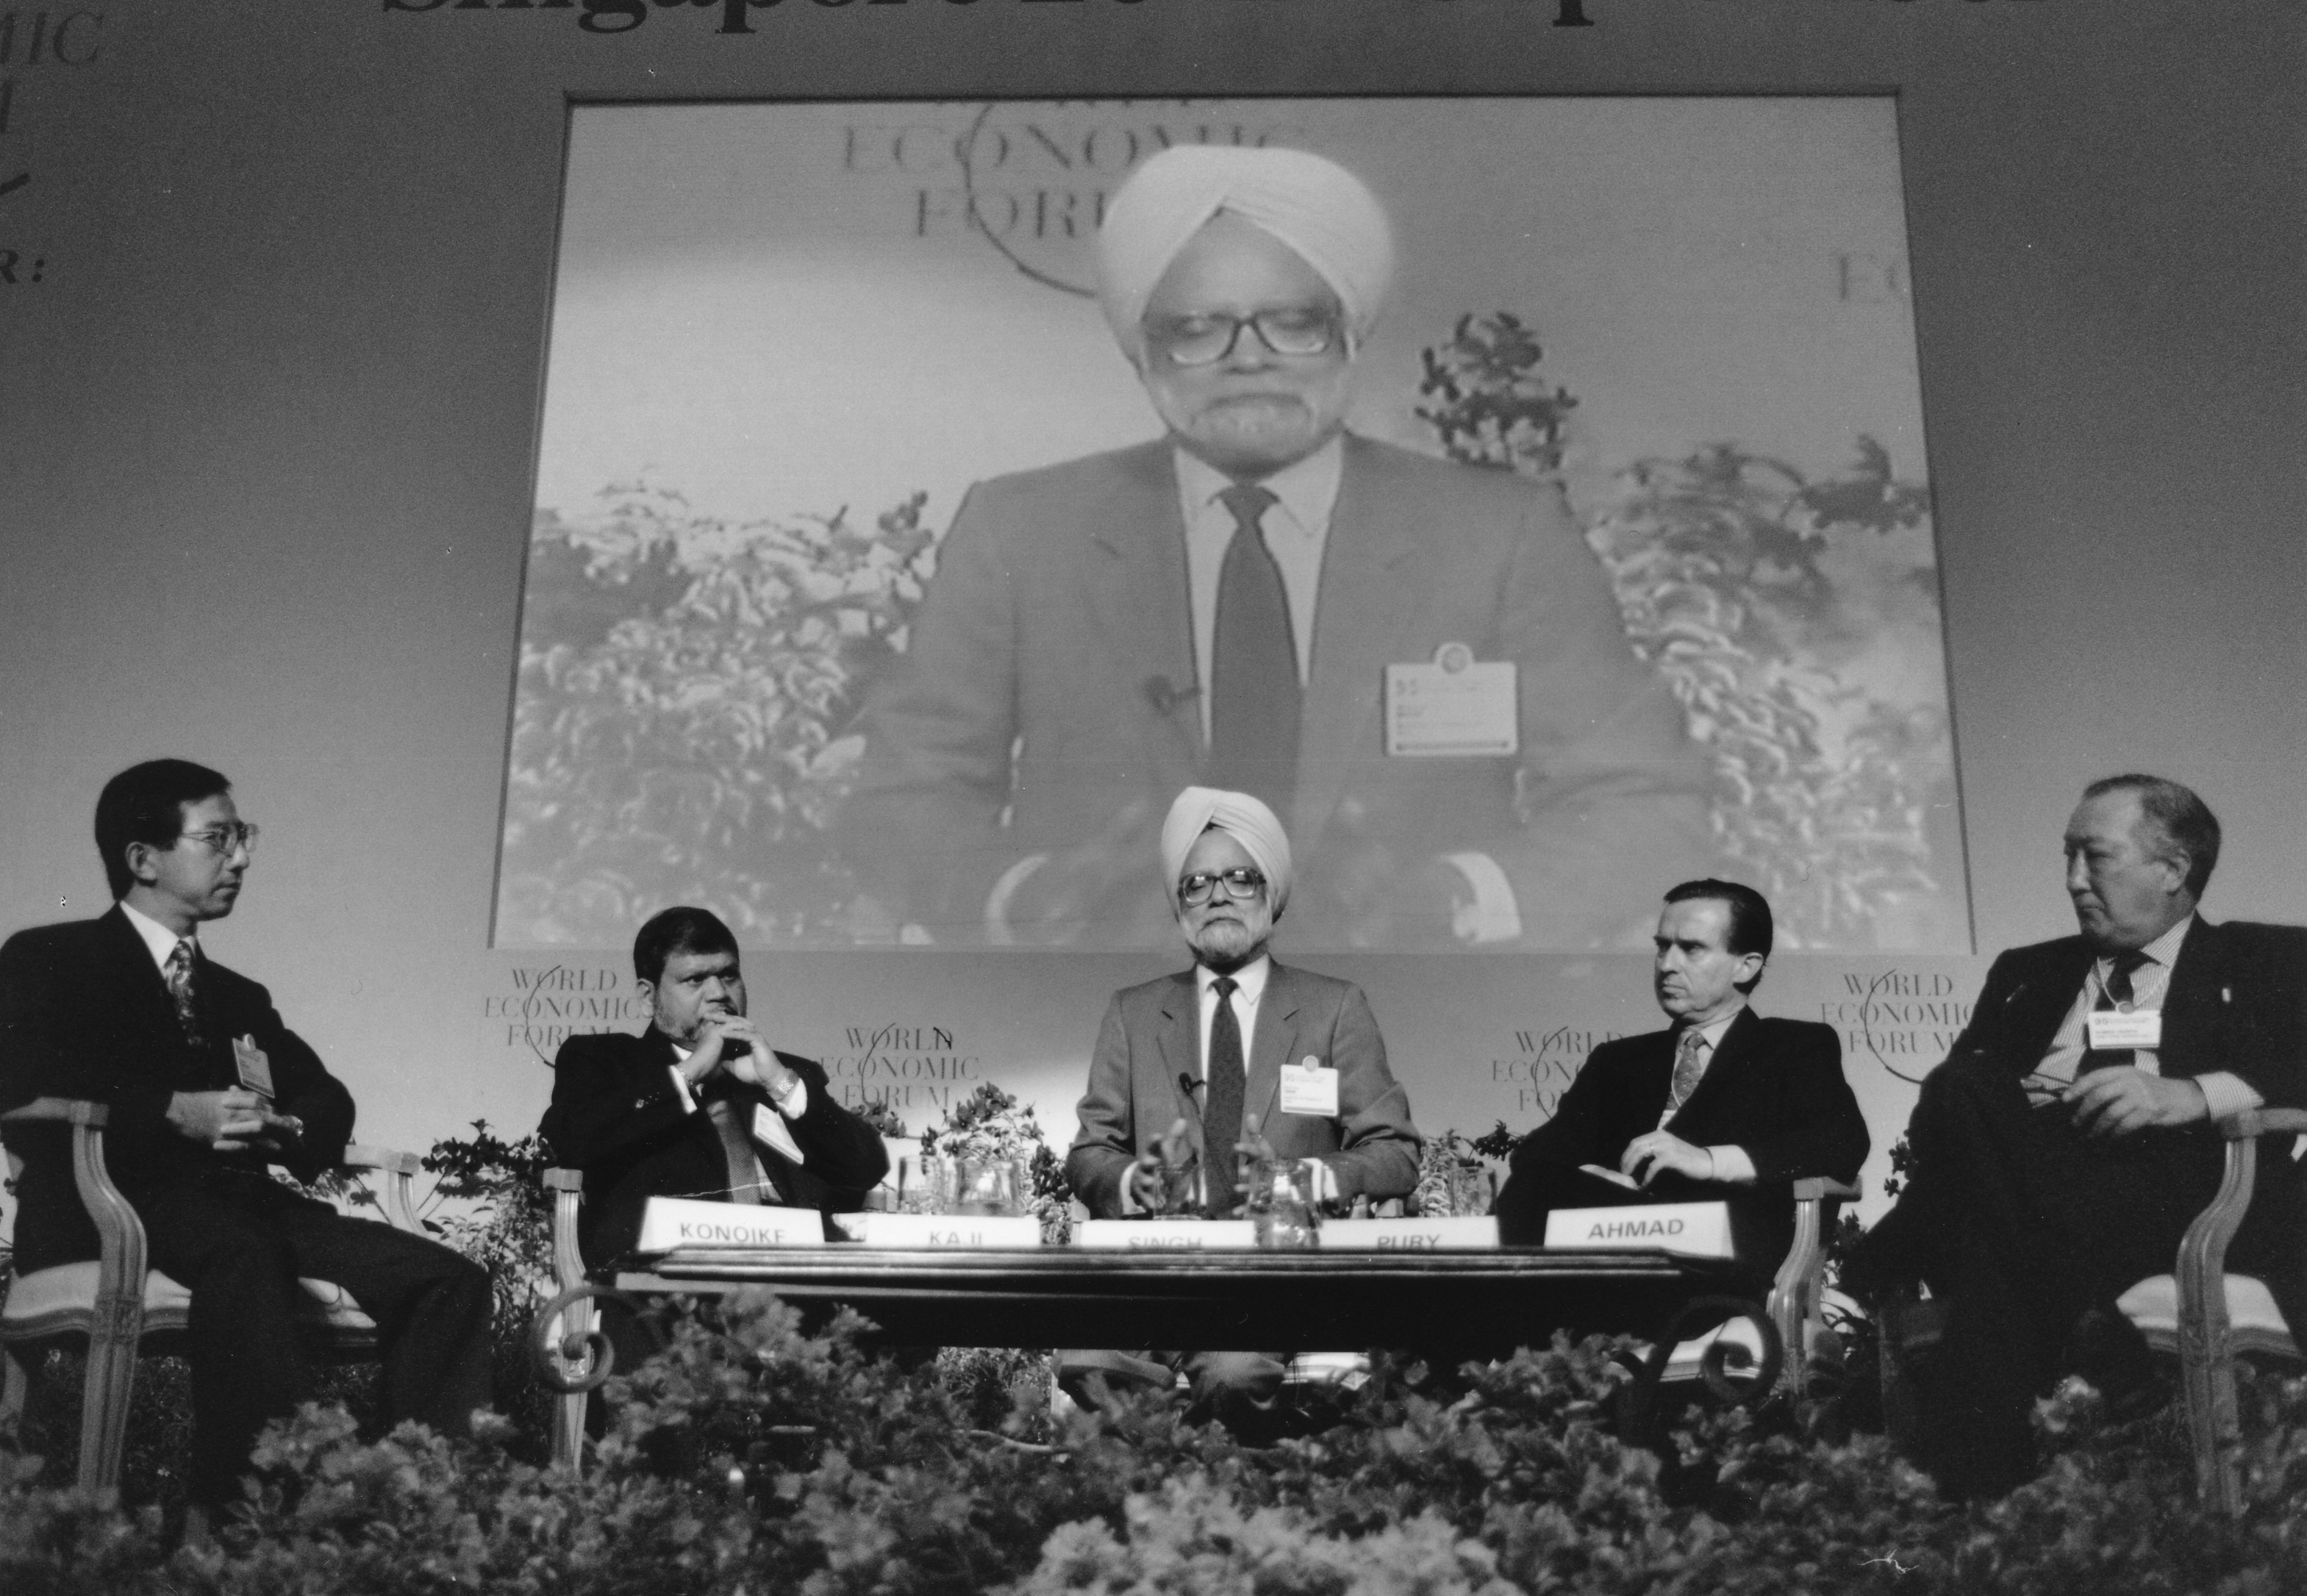 Manmohan Singh, Chairman of the Parliamentary Committee on Commerce, India, speaking with other panellists